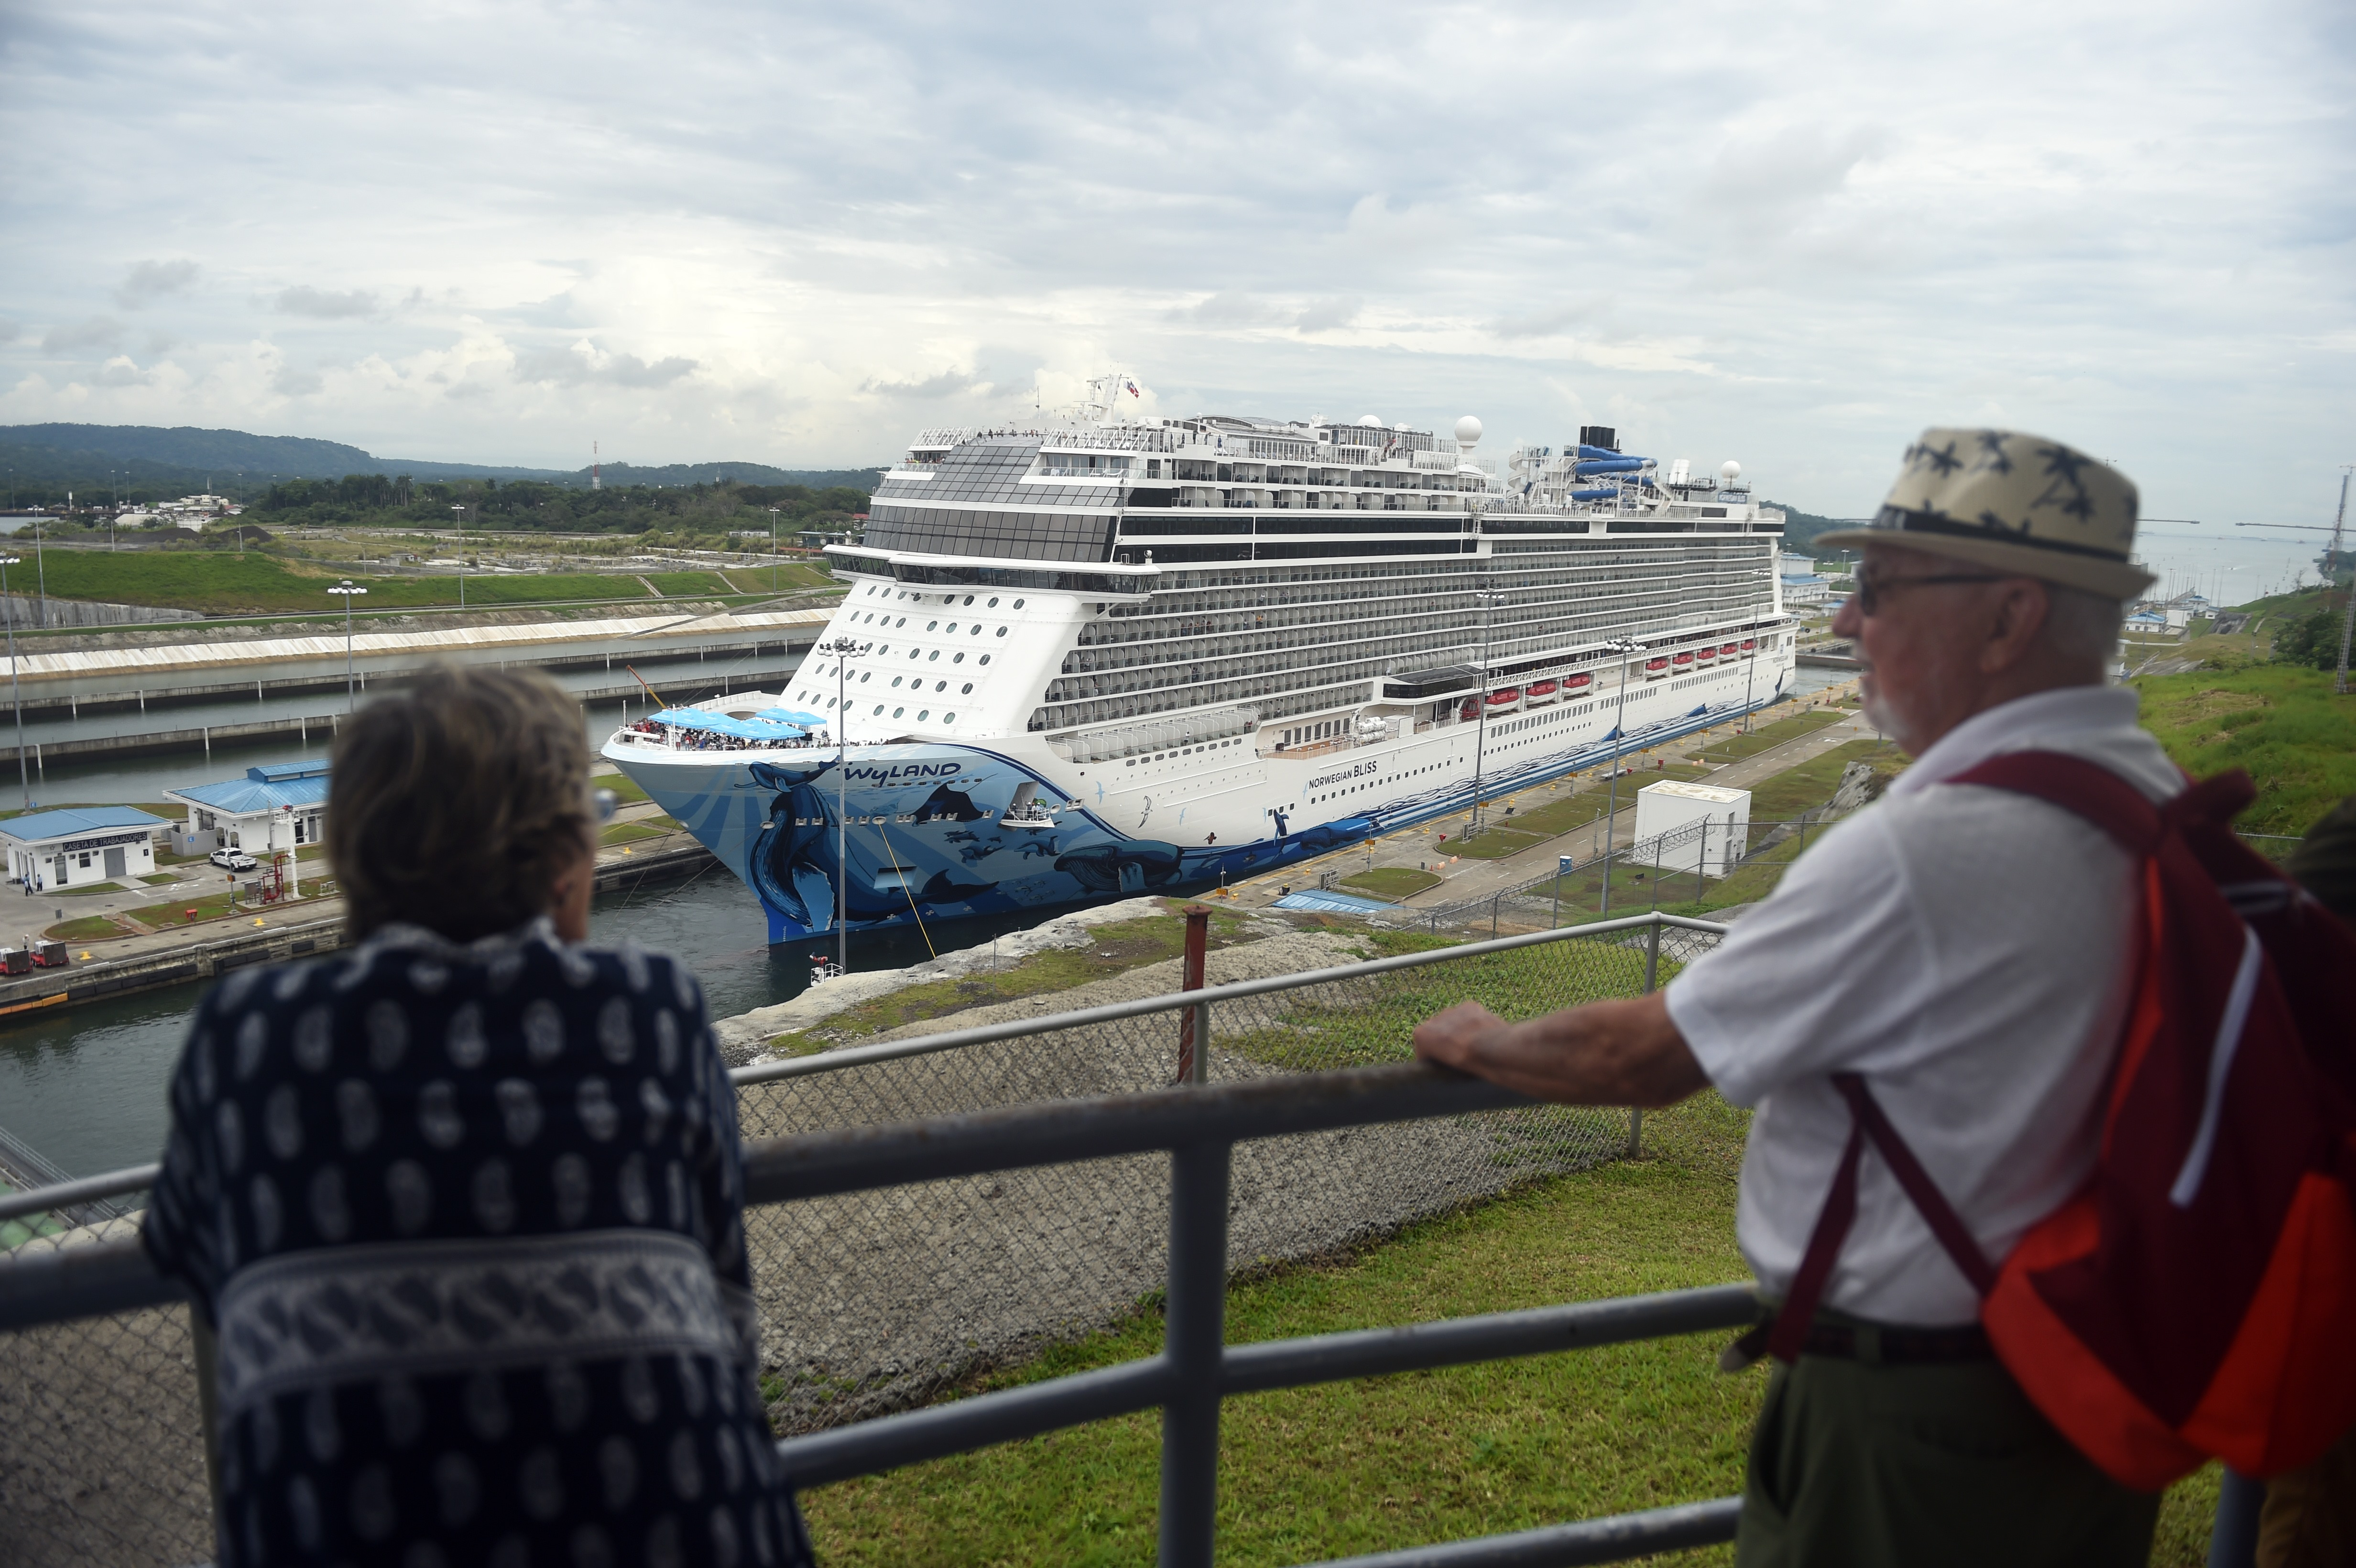 Tourists look at a cruise ship crossing the Panama Canal in the Agua Clara locks in Colon 80 km northwest from Panama City.